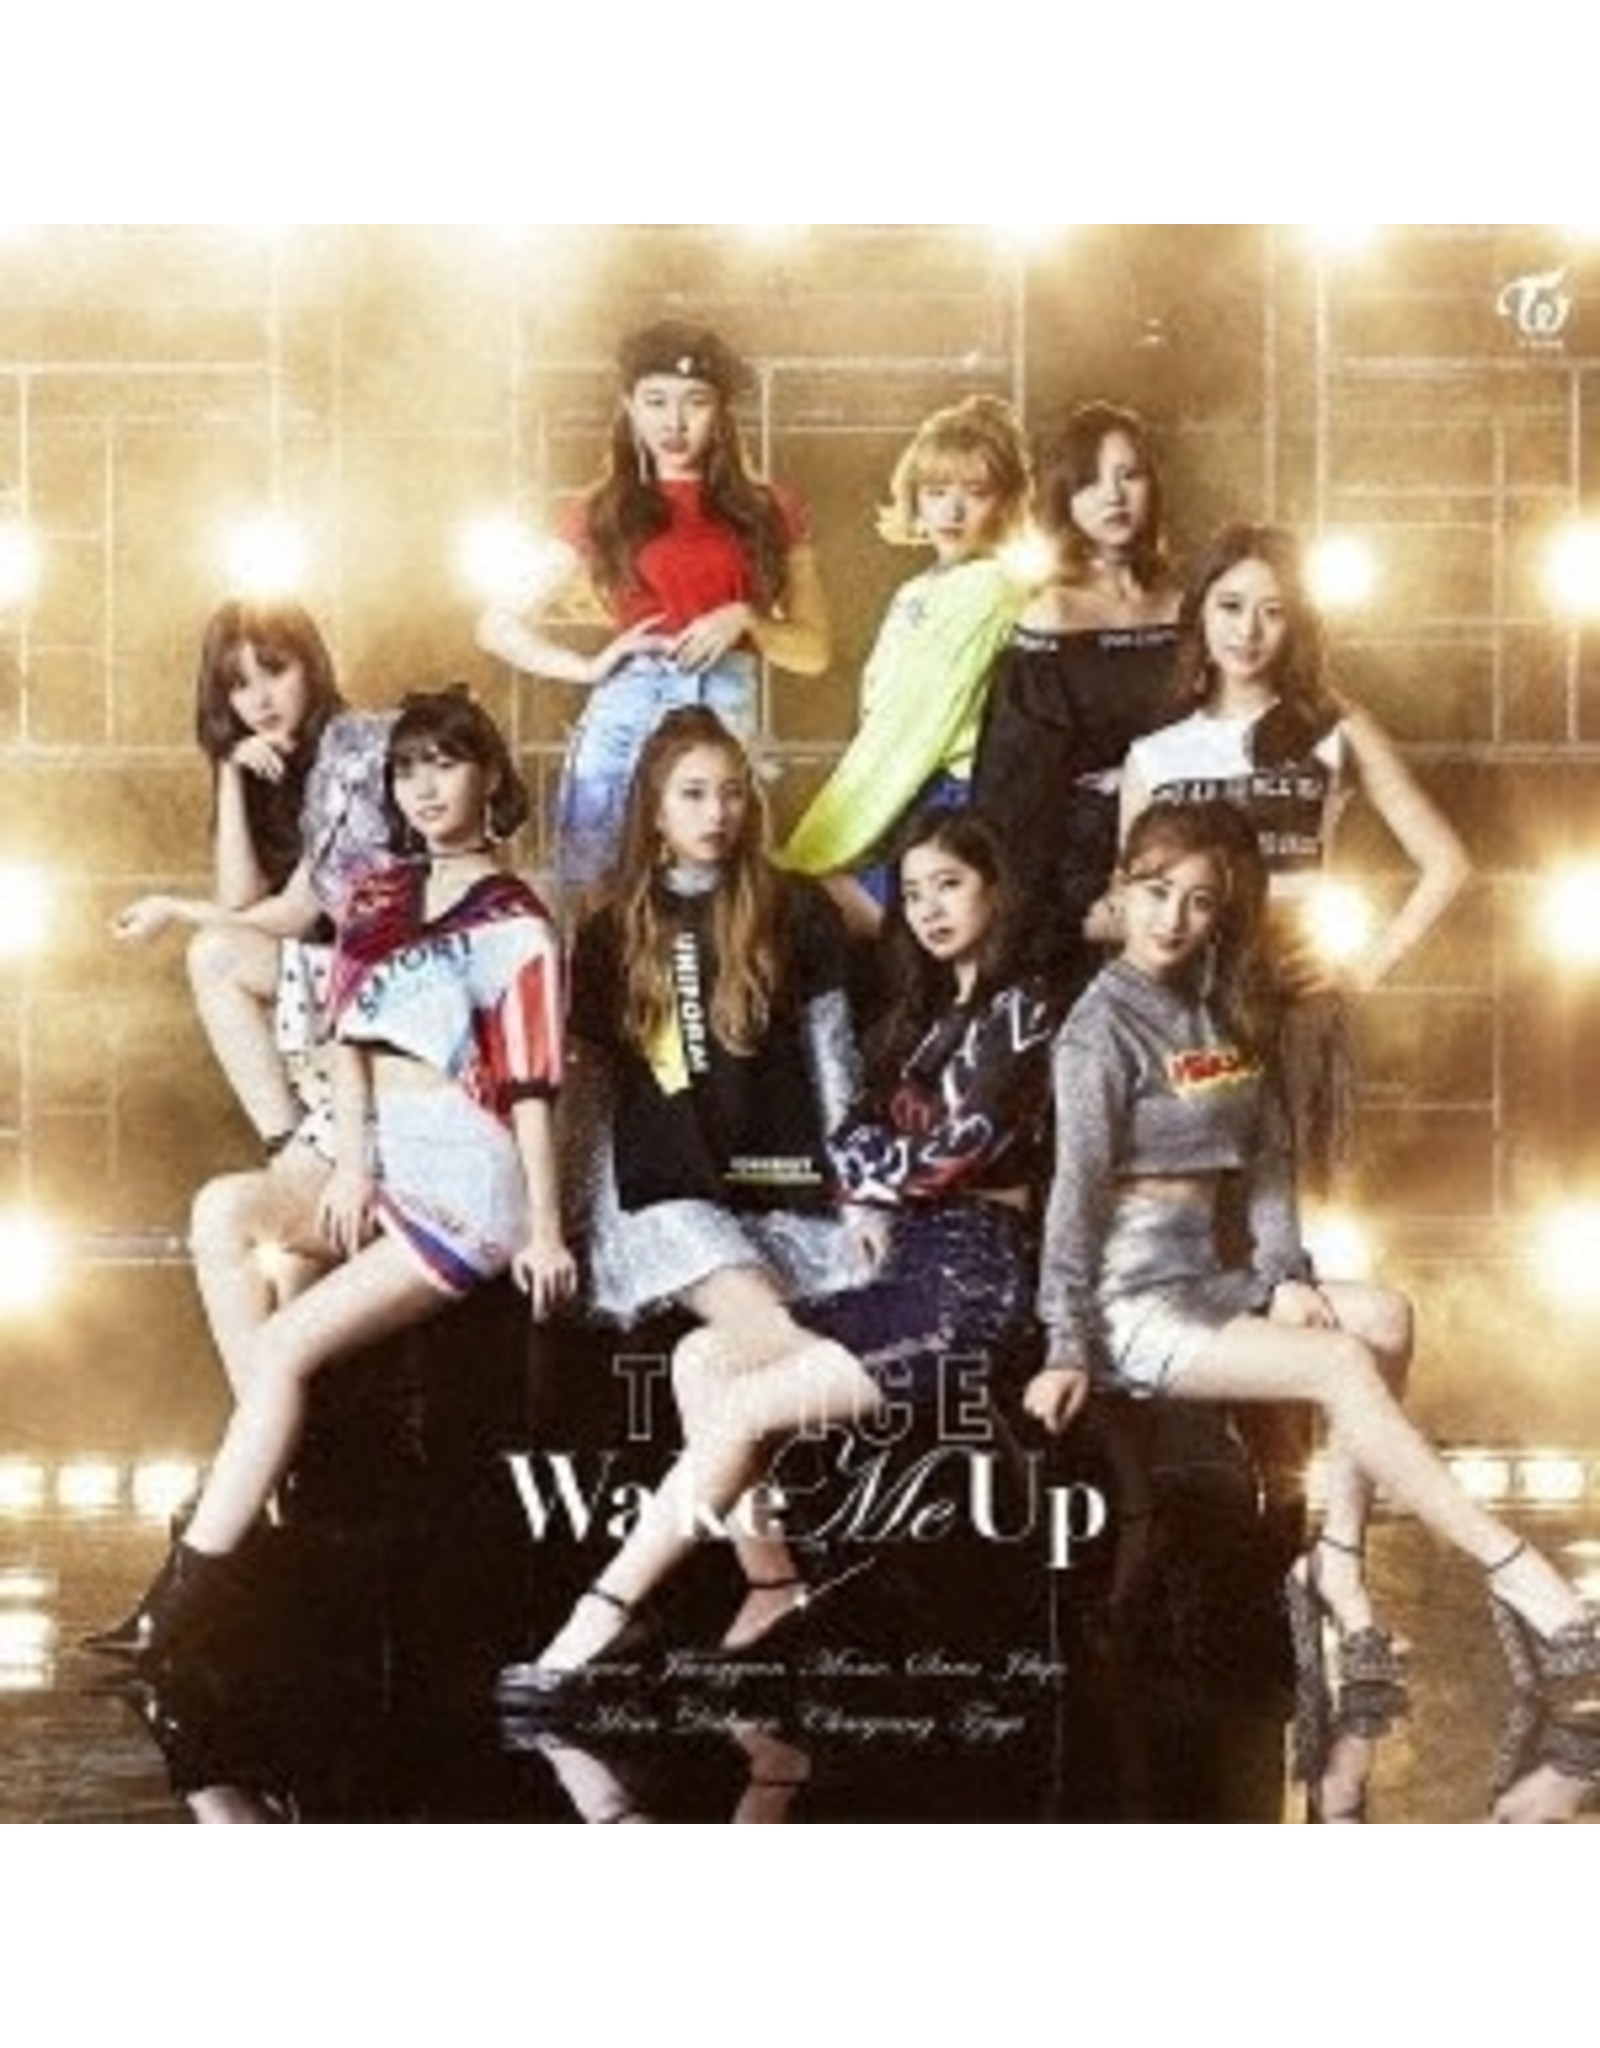 WP [CD]WAKE ME UP [TRADING CARD FOR 1ST PRESSING ]